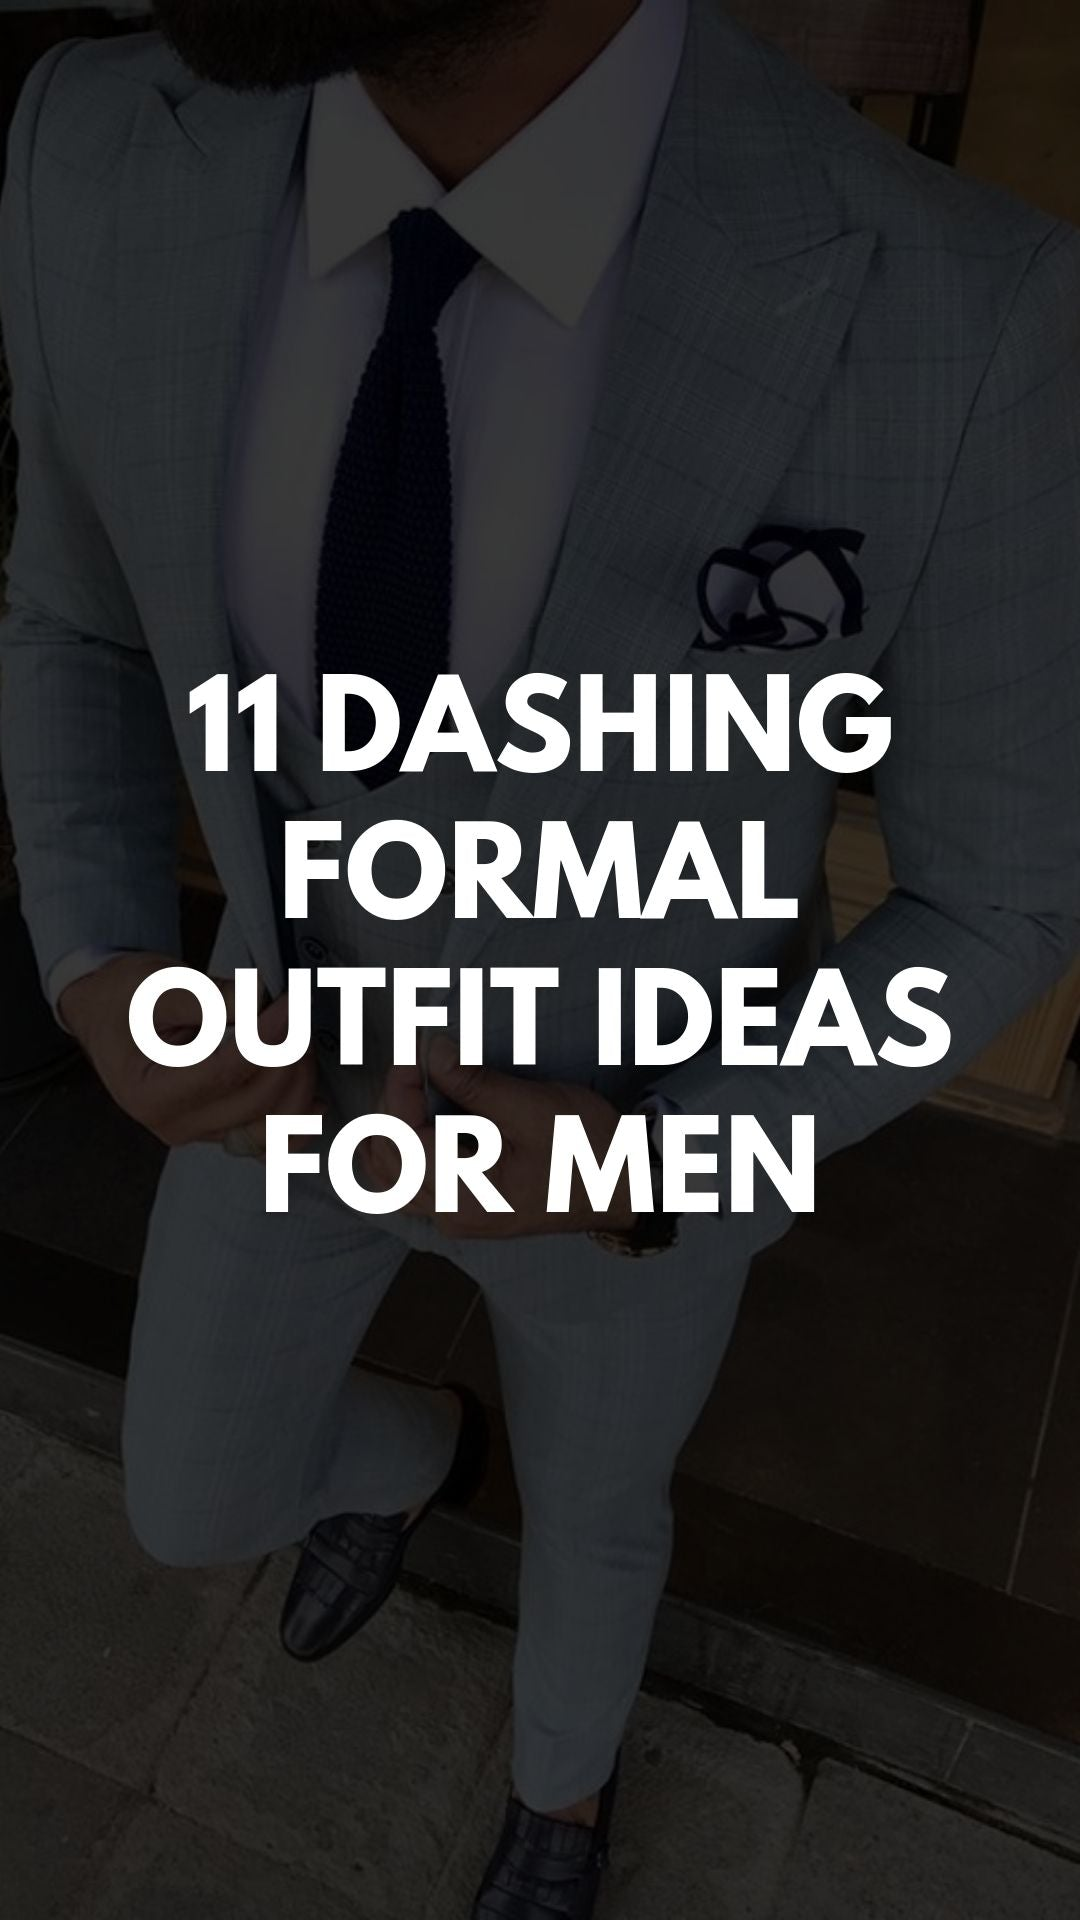 11 Dashing Formal Outfit Ideas For Men